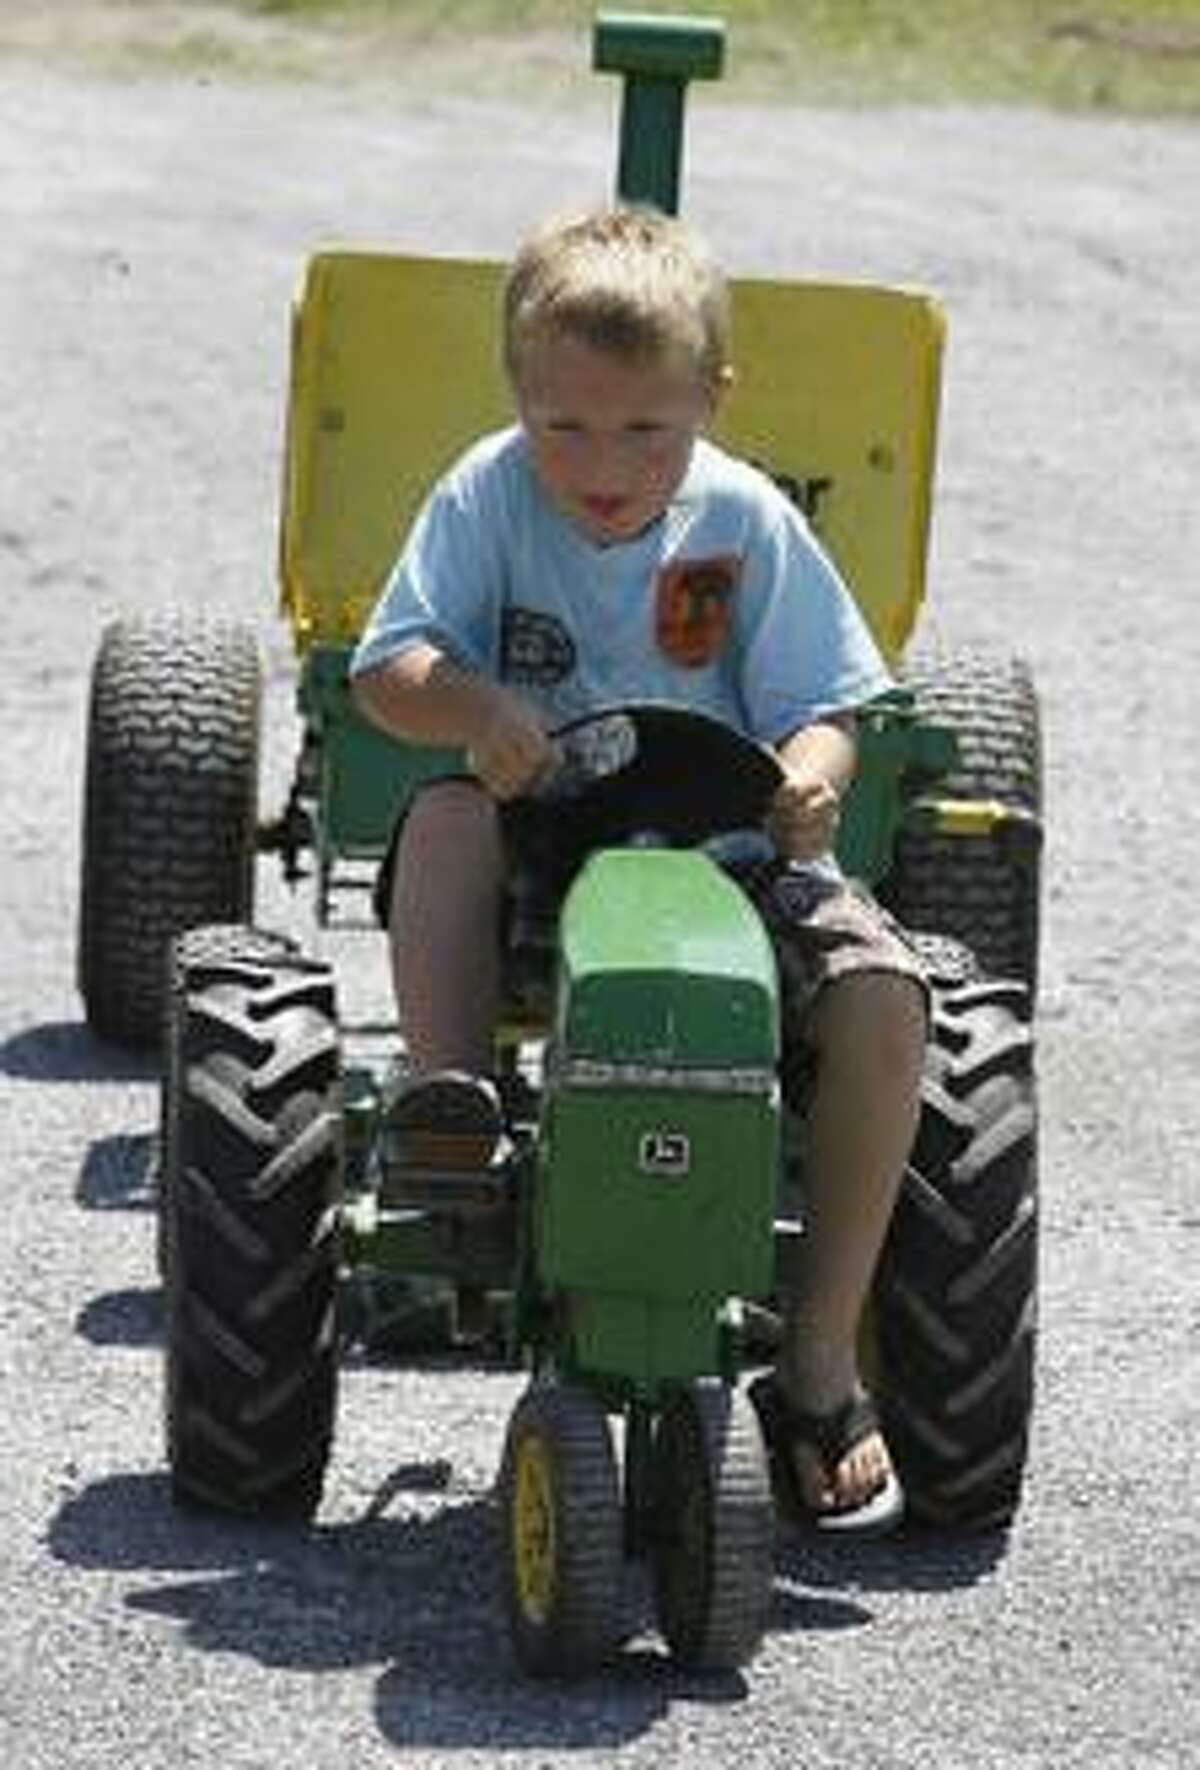 Dispatch Staff Photo by JOHN HAEGERtwitter.com/oneidaphotoKaden Wilson ,5, of Munnsville works to pull the sled 25 feet during the peddle tractor pull contest test at the 17th annual Ruritan Community Fair in Munnsville on Saturday, July 30, 2011.